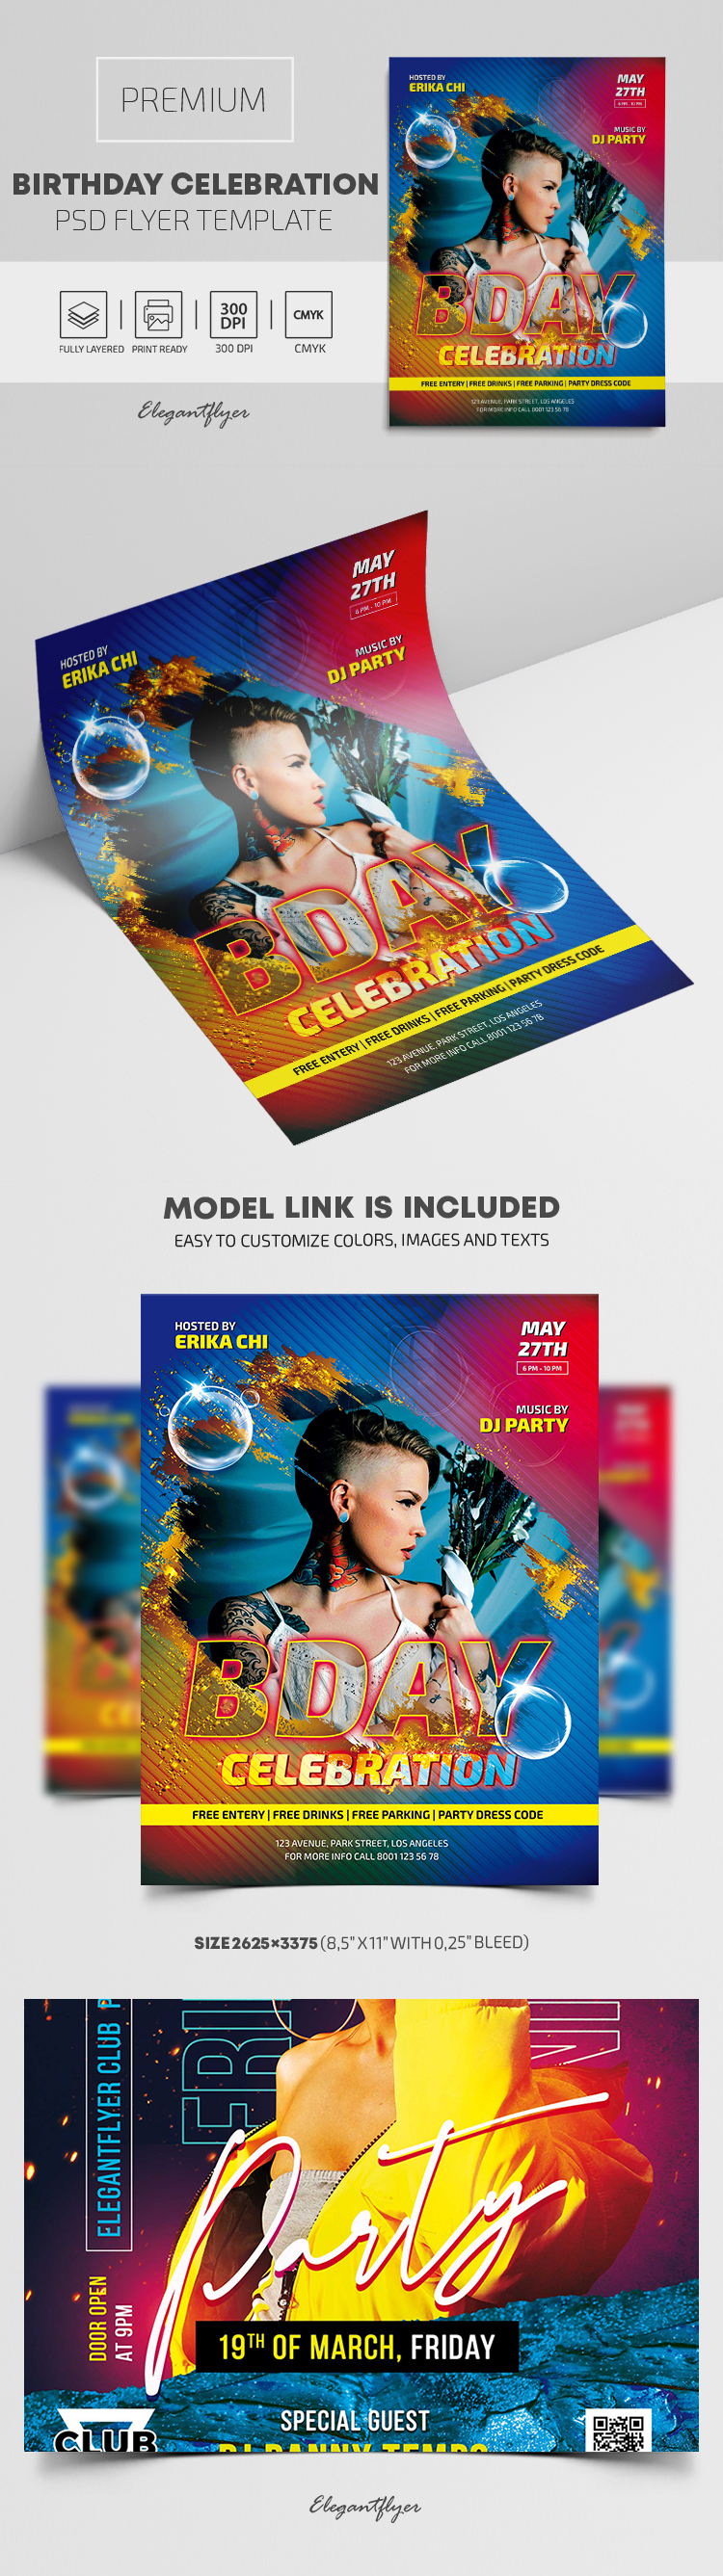 Birthday Celebration – Premium PSD Flyer Template